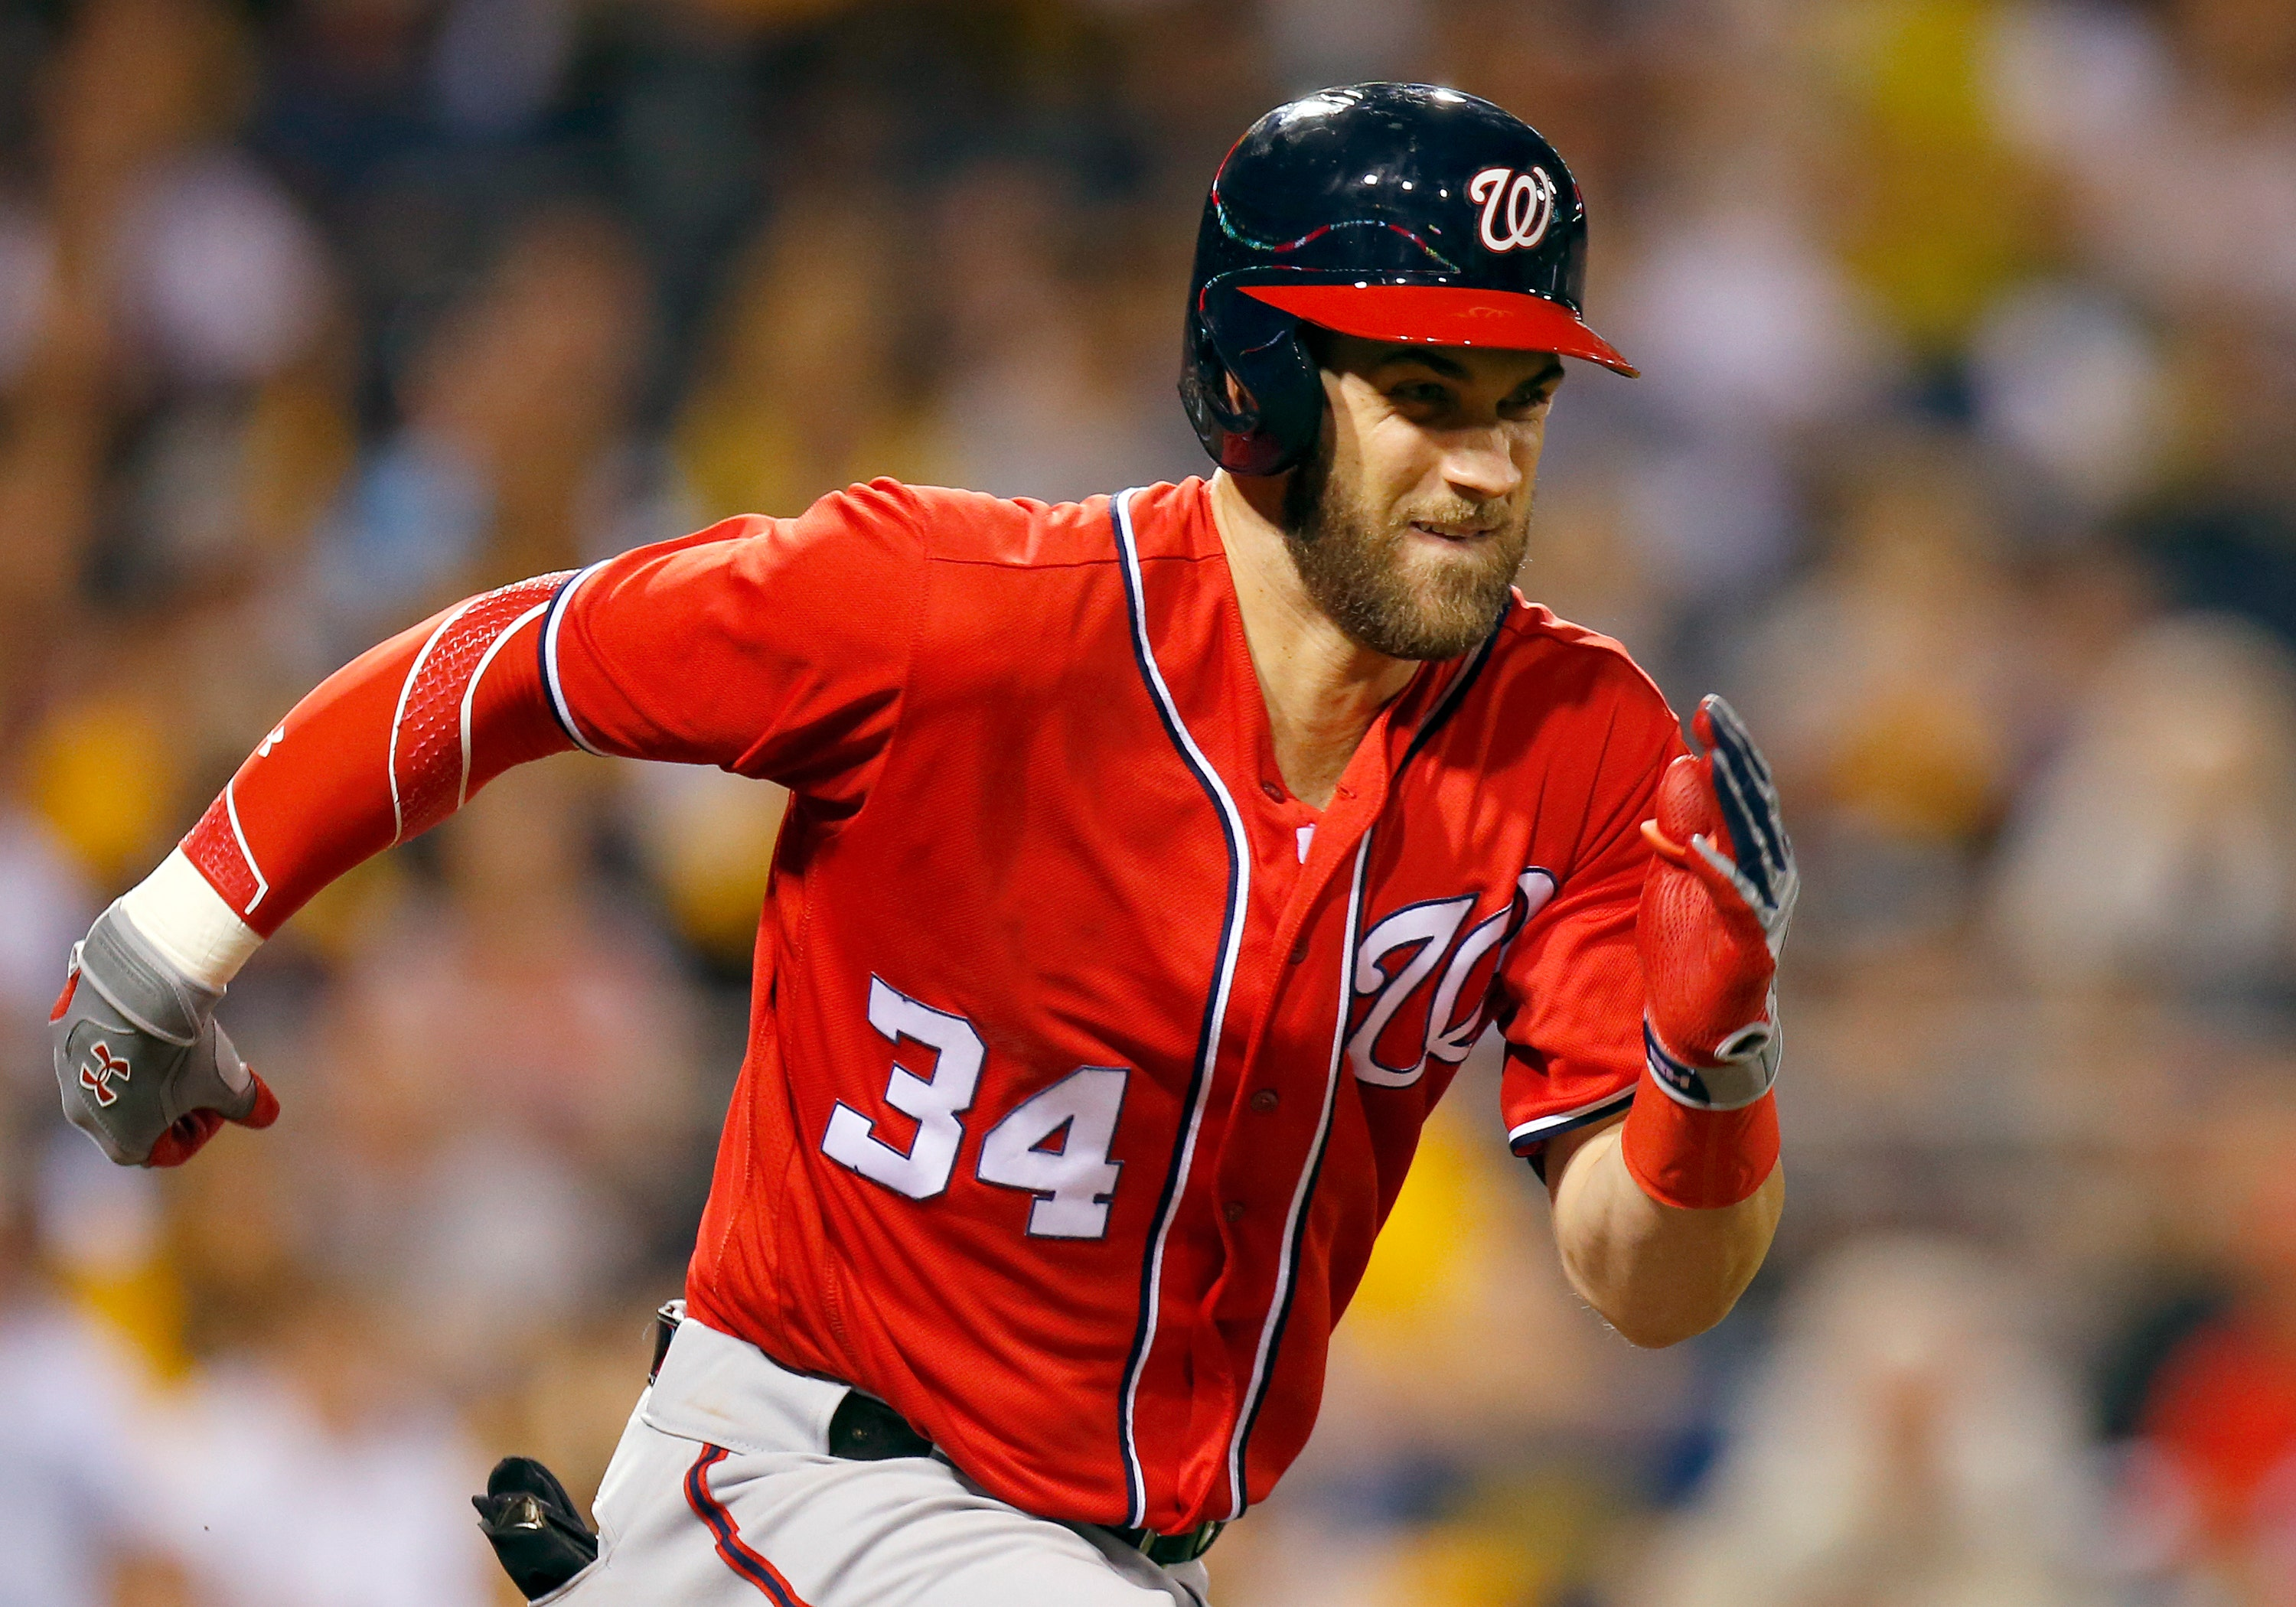 Bryce Aron Max Harper born October 16 1992 is an American professional baseball right fielder for the Washington Nationals of Major league baseball